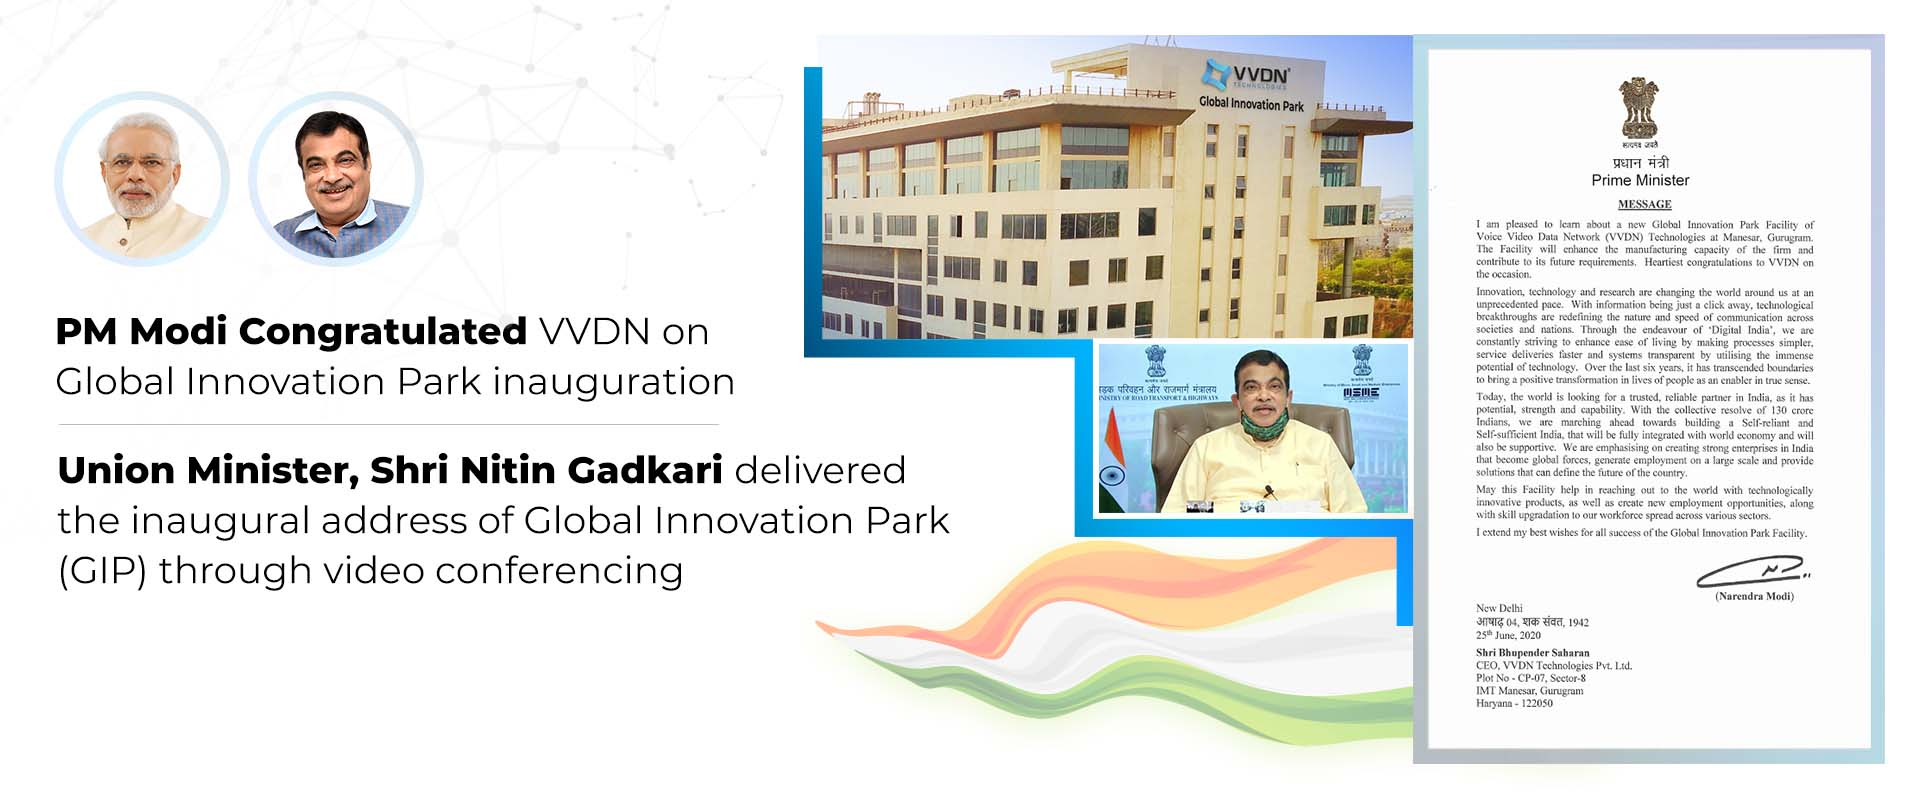 Nitin Gadkari to  inaugurate vvdn global innovation park at Manesar in India